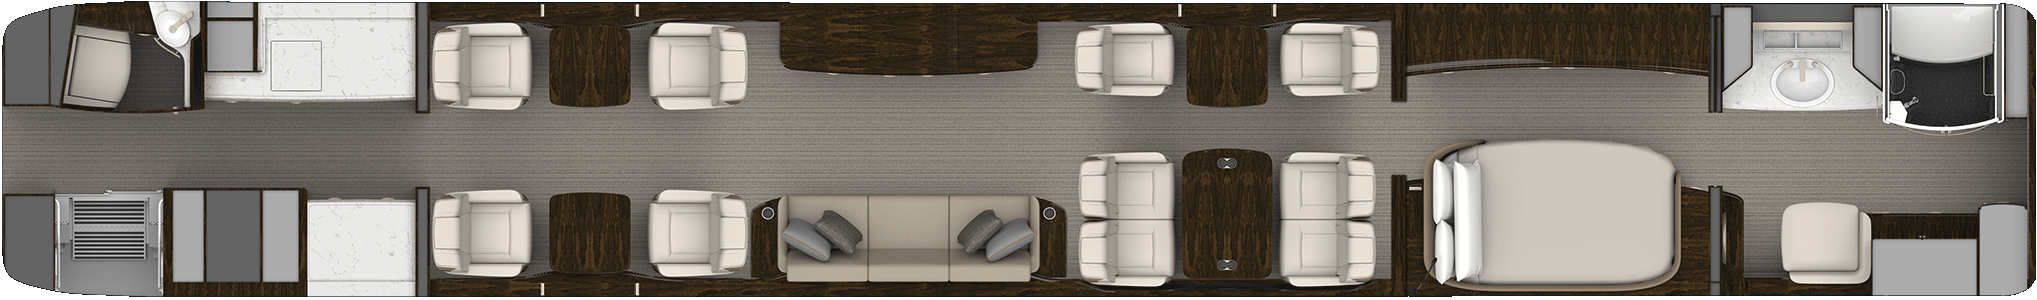 Master Suite aircraft floorplan